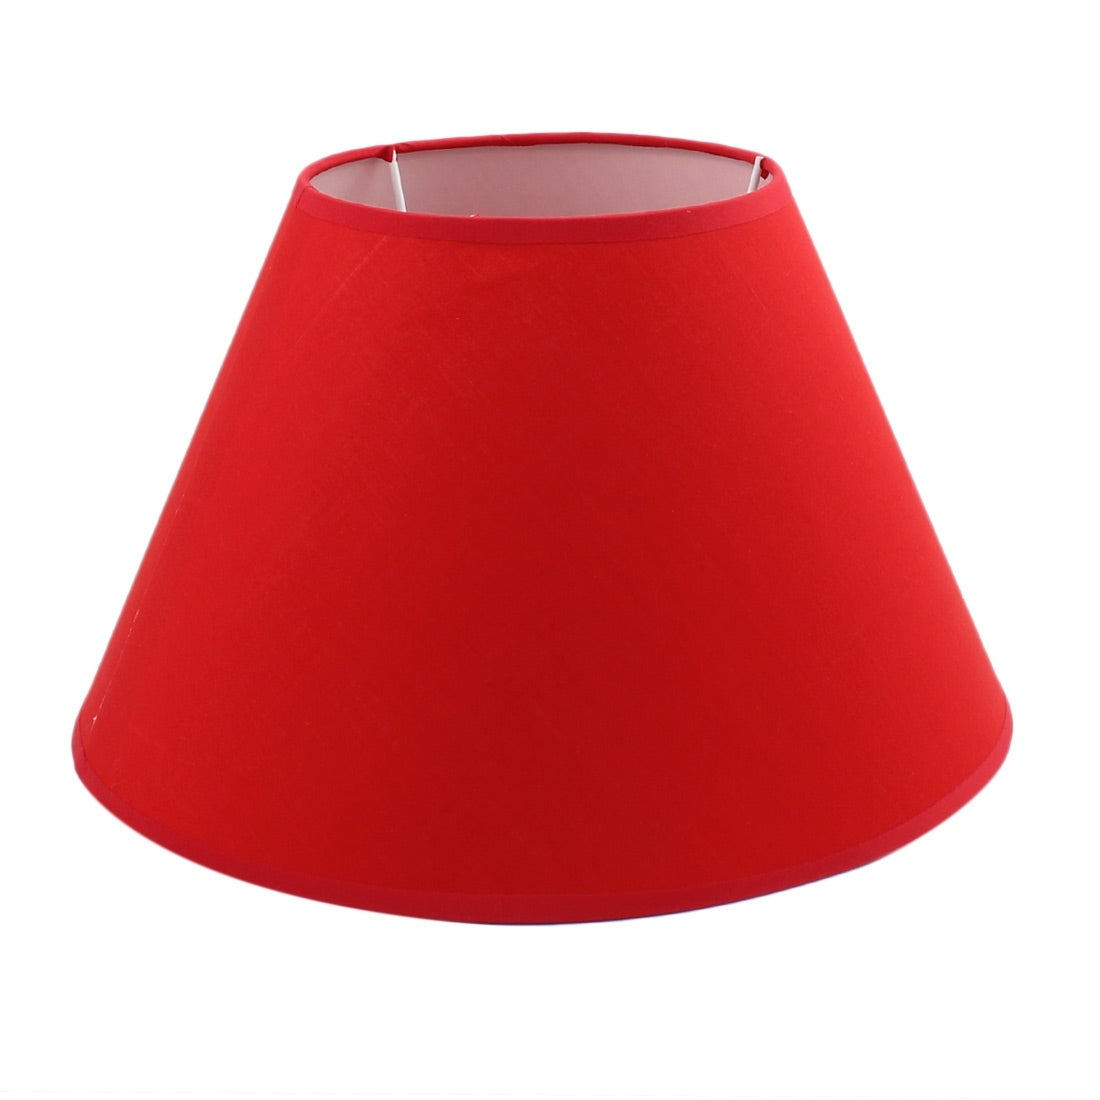 150mm X 300mm 190mm Red Fabric Shell Lamp Shade For Student Reading Free Shipping On Orders Over 45 23095837